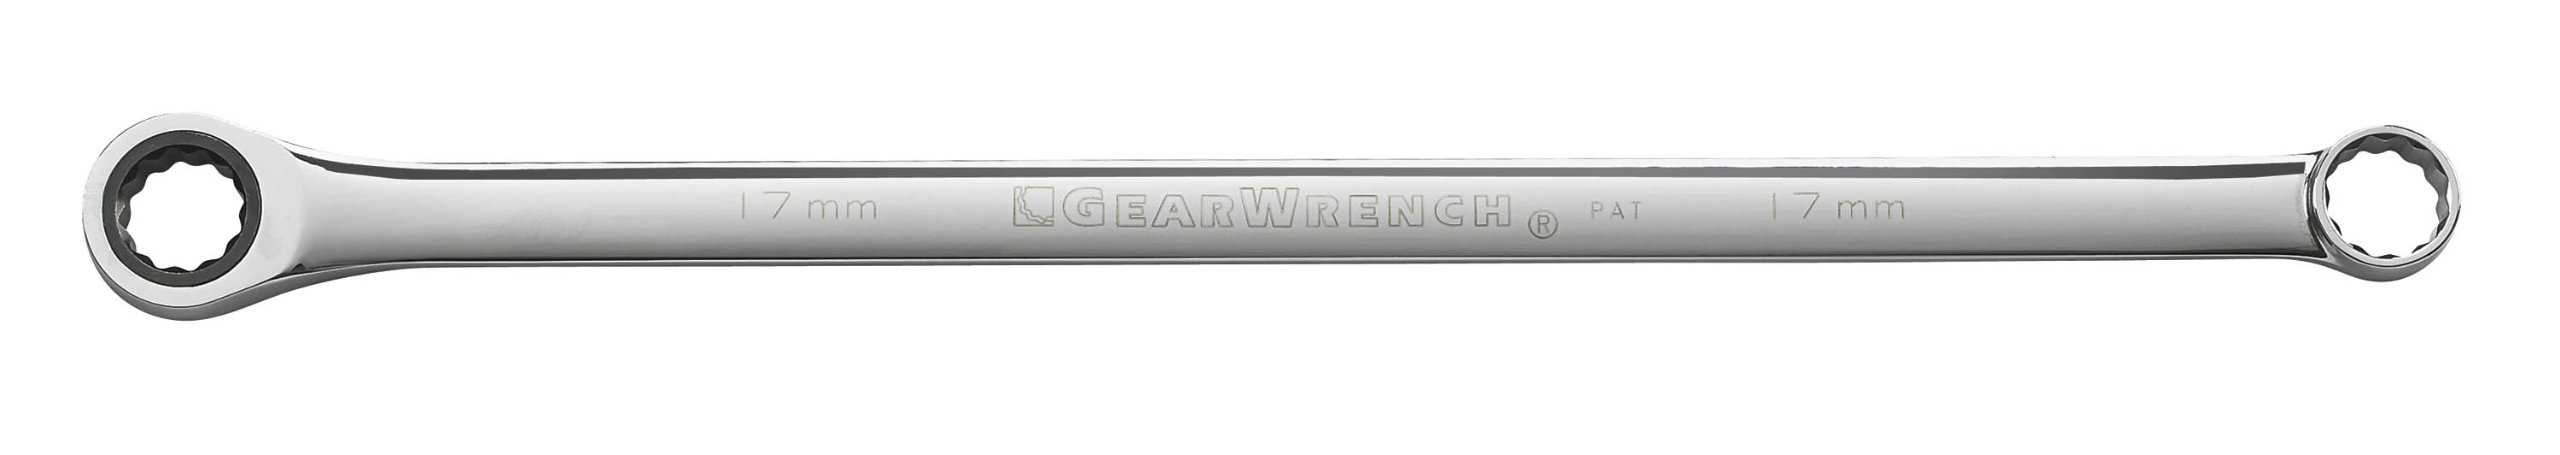 GEARWRENCH 85924 XL 24mm GearBox Ratcheting Wrench